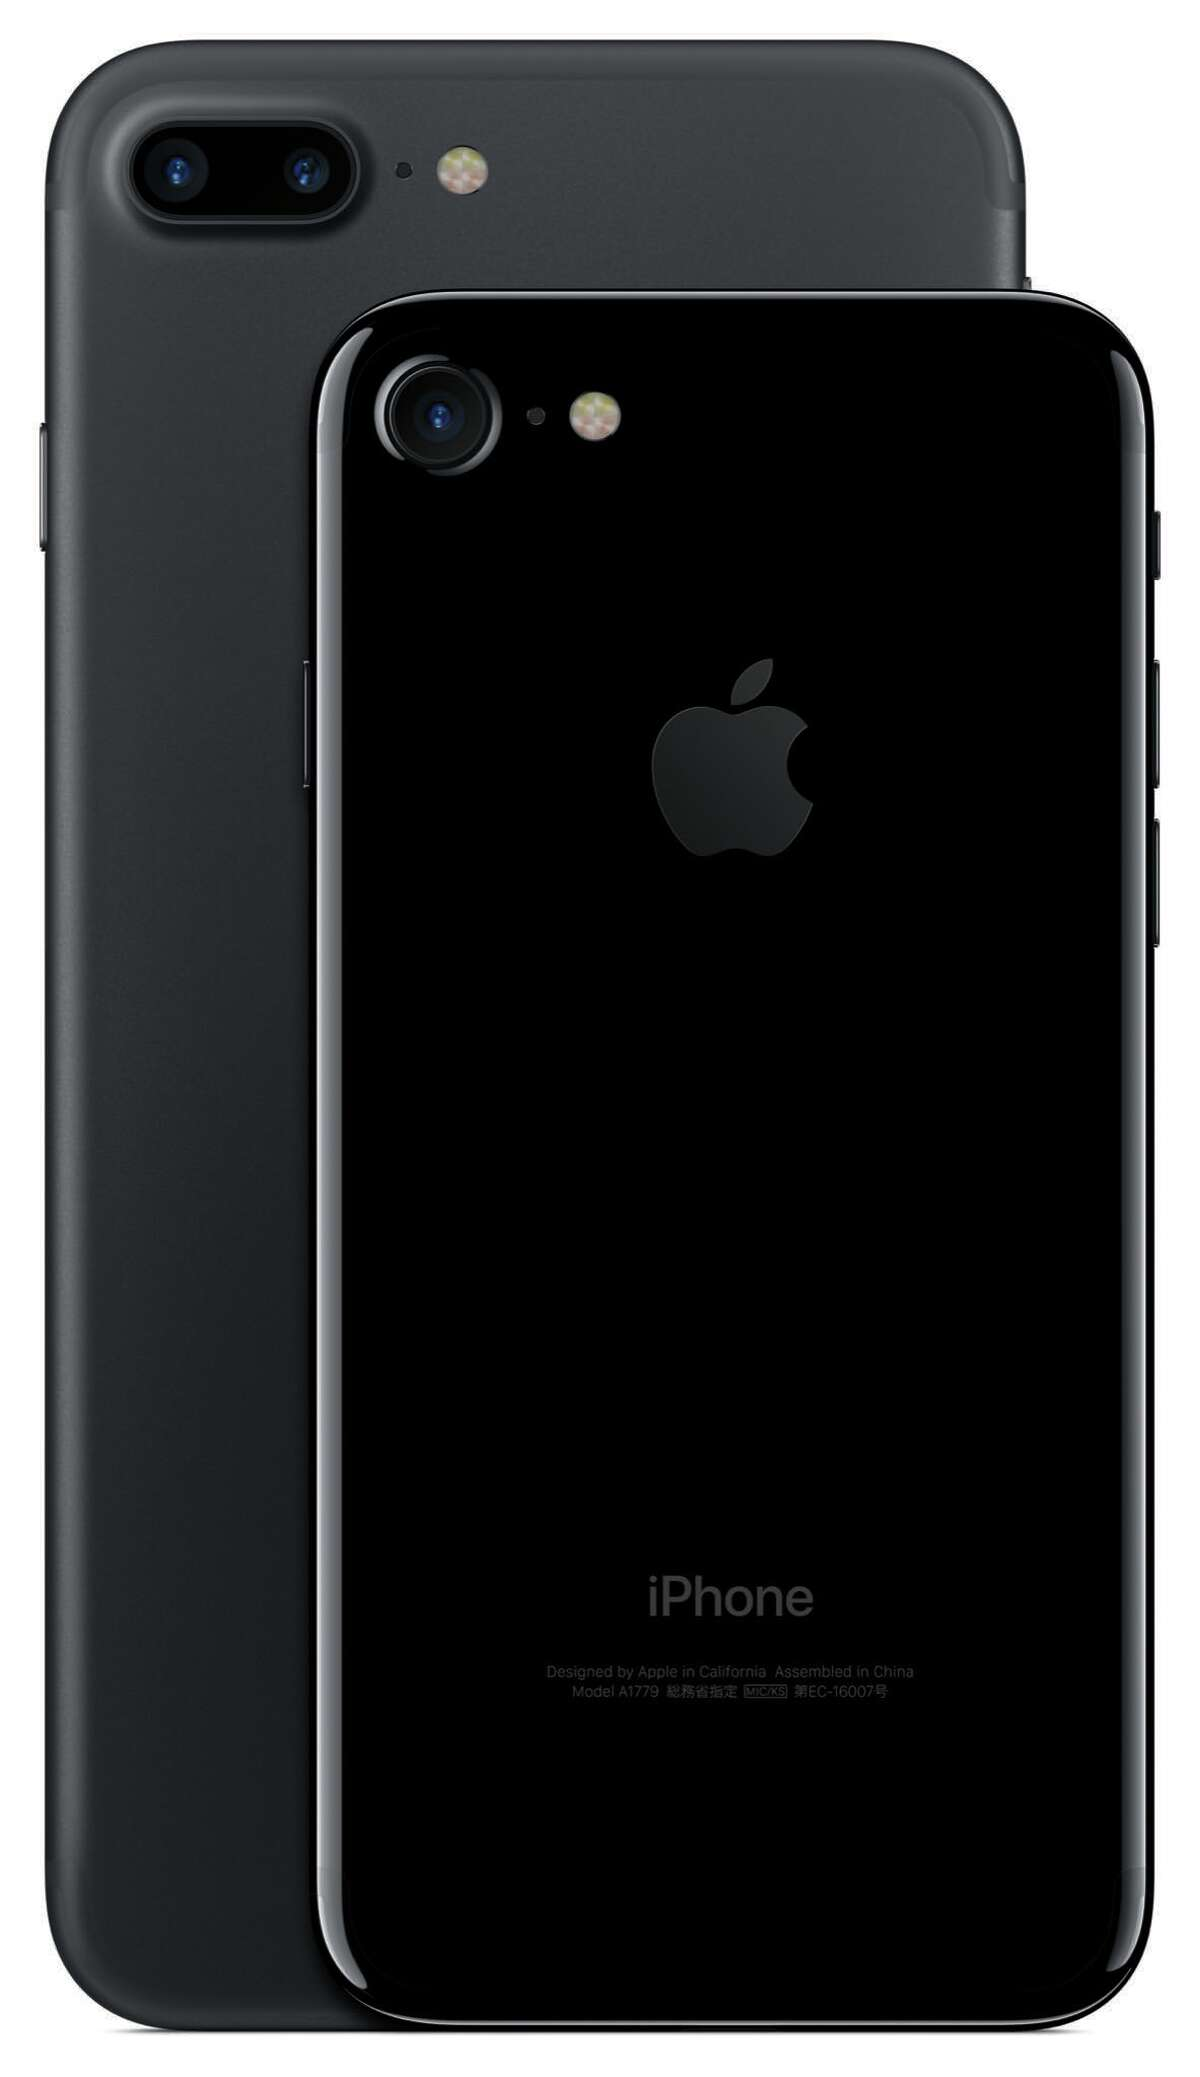 Click ahead for 9 things to know about the new iPhone 7 unveiling in San Francisco Wednesday Sept. 7.